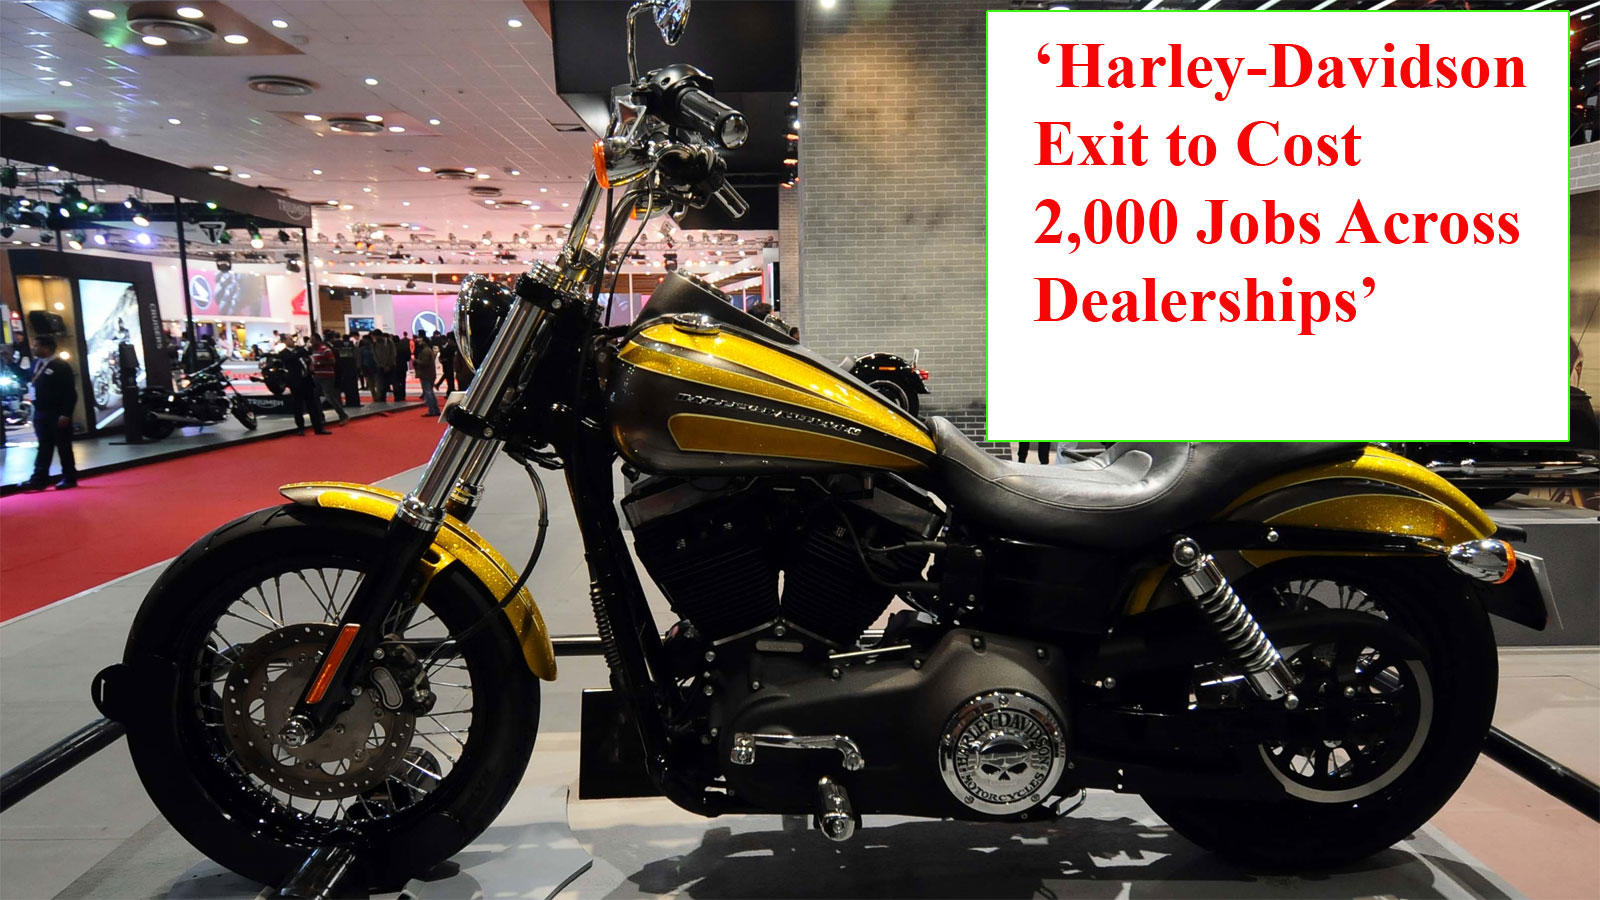 harley-davidson-exit-to-cost-2000-jobs-across-dealerships-fada